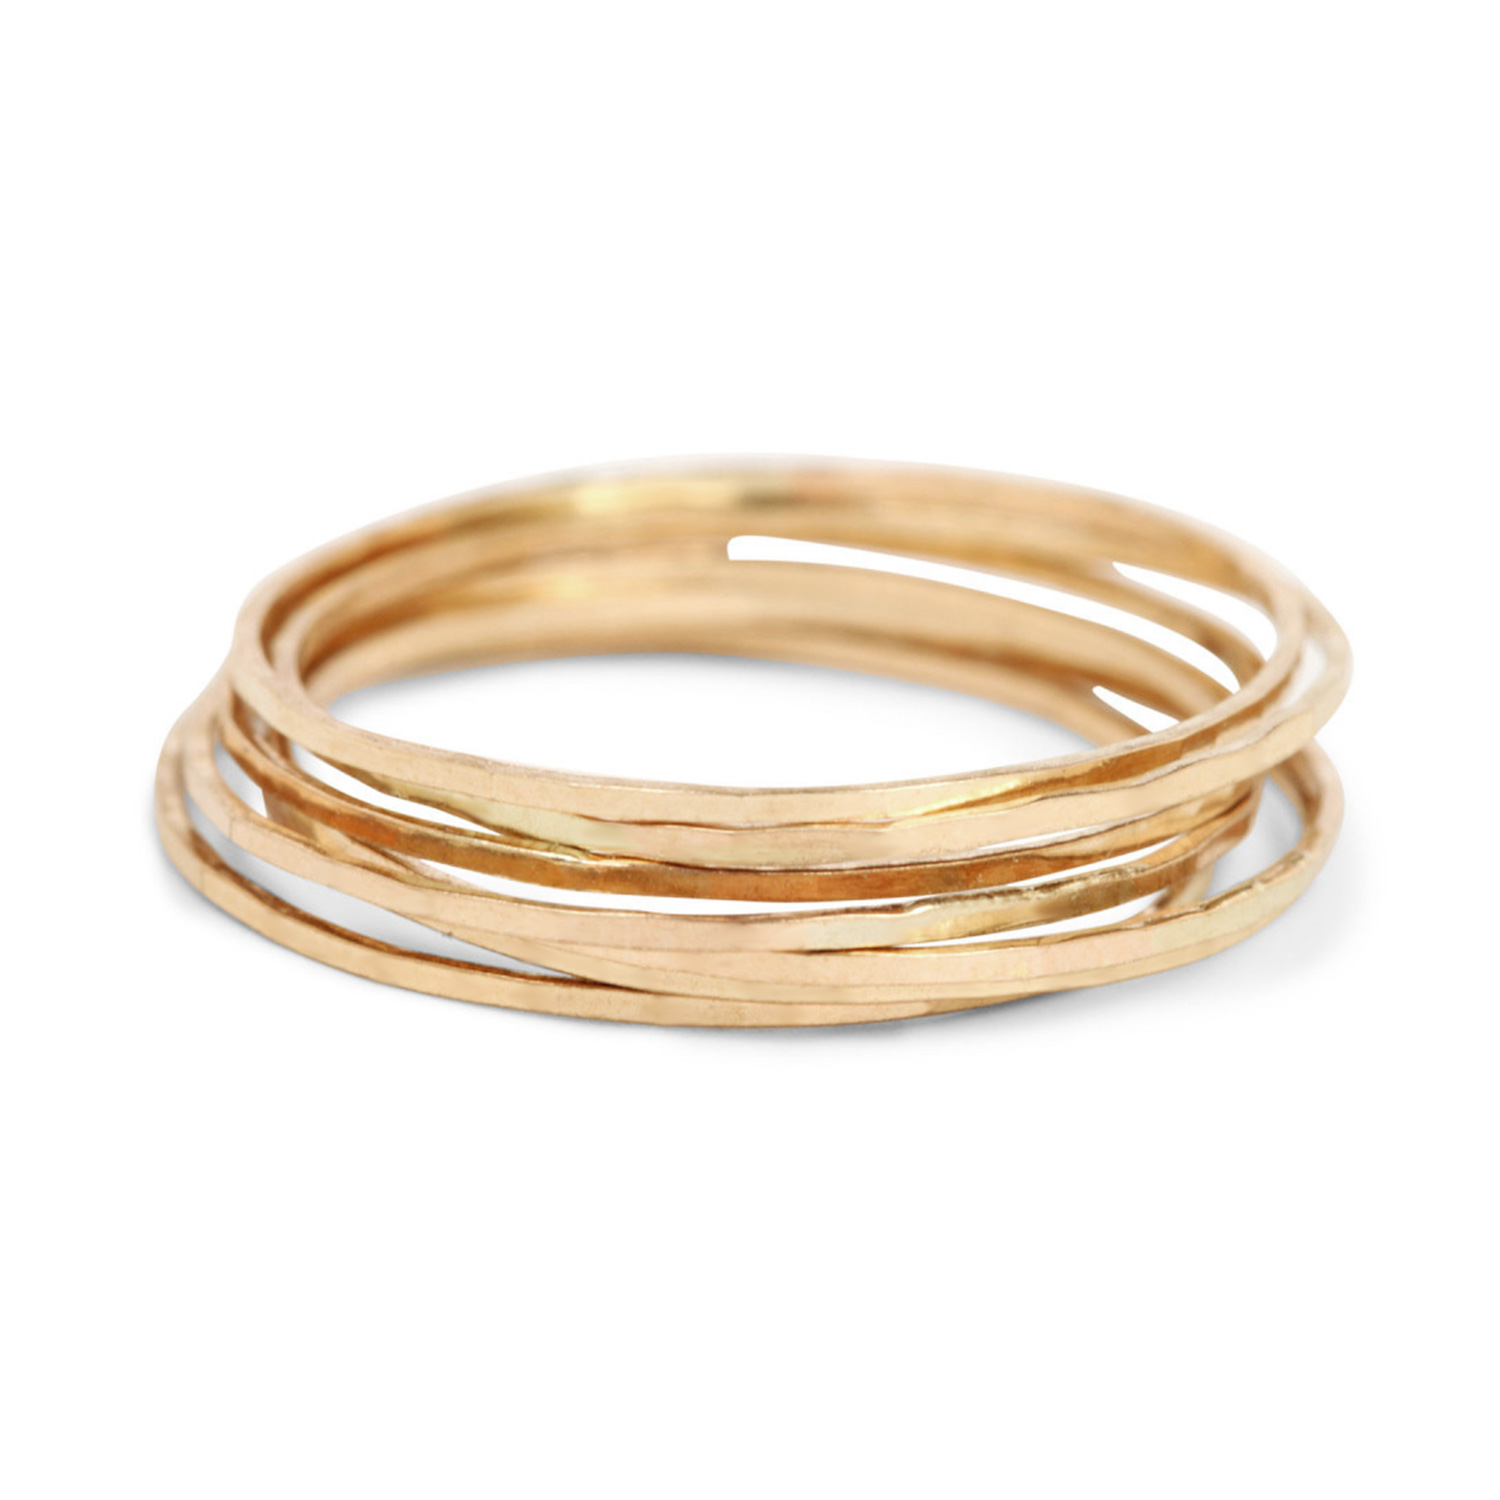 minimal gold band birthday for huang svatba stone u rose ivatele thin bella na st four simple pinterest n her pin gifts stacking dainty bands ring wedding nce